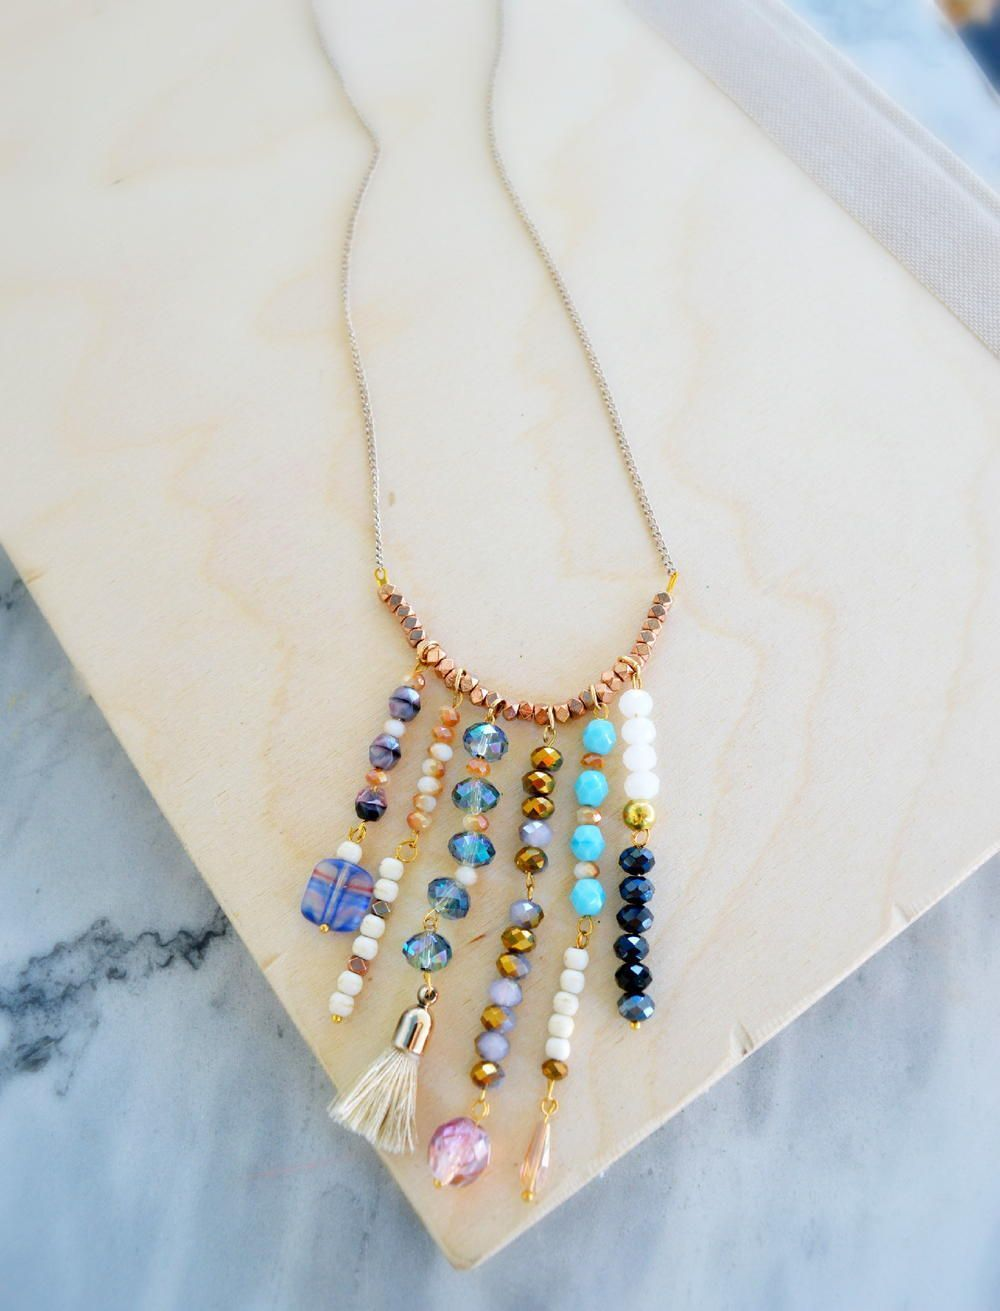 Making Jewelry from Recycled Products | AllFreeJewelryMaking.com ...